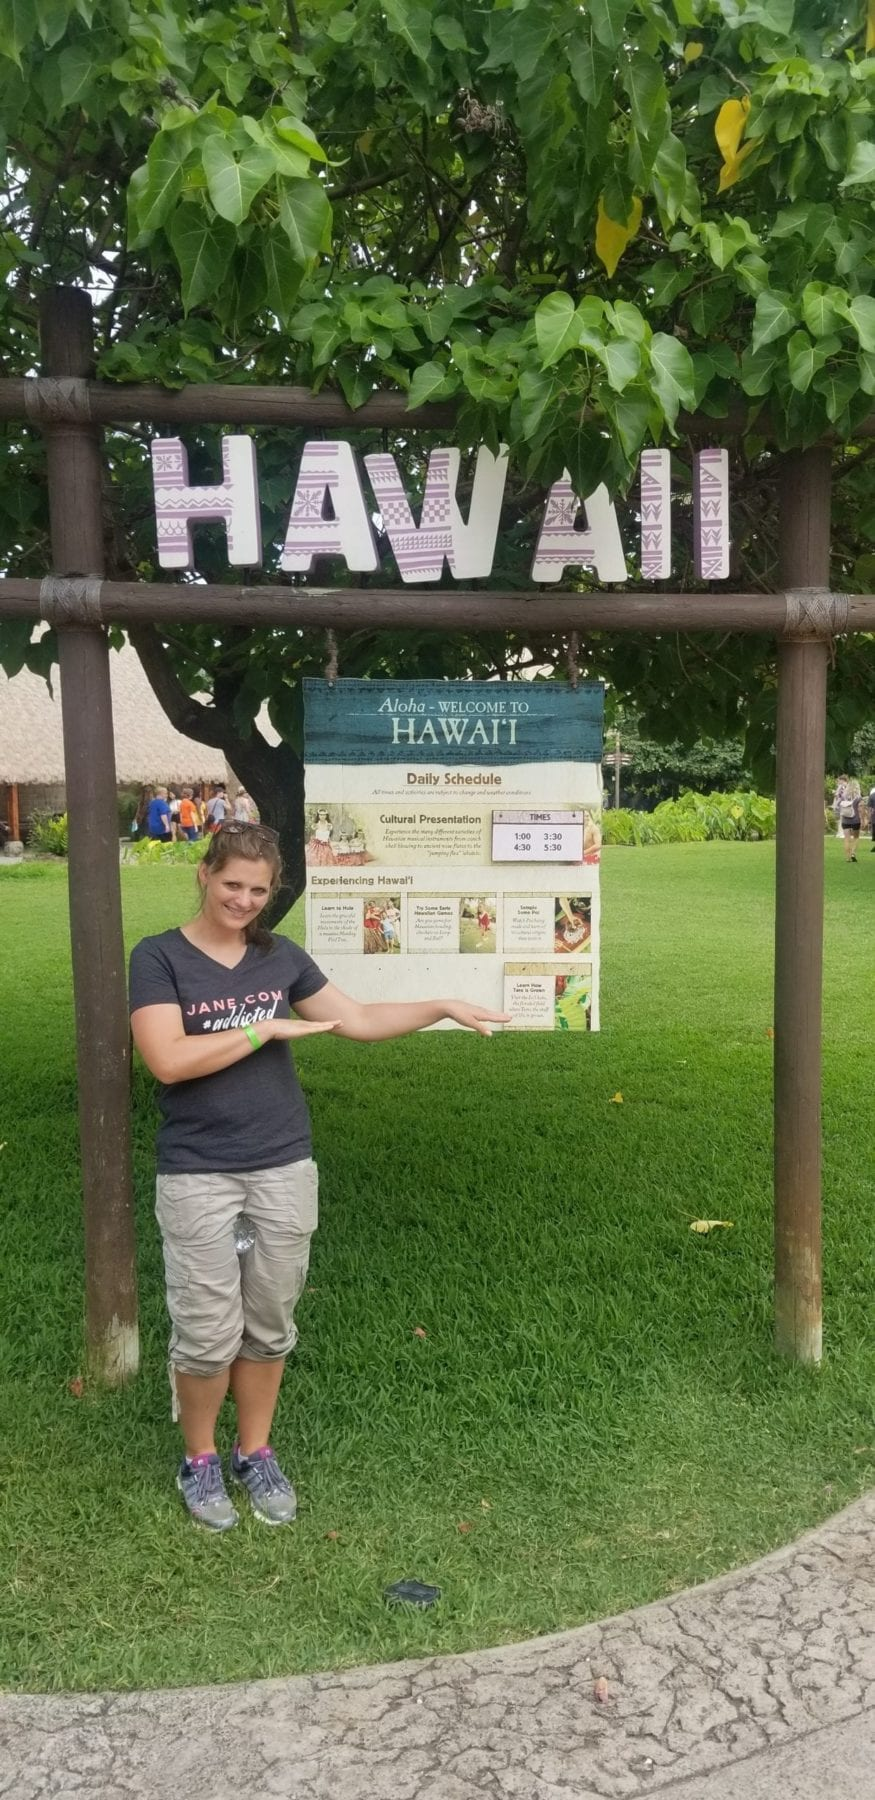 Hawaii at PCC